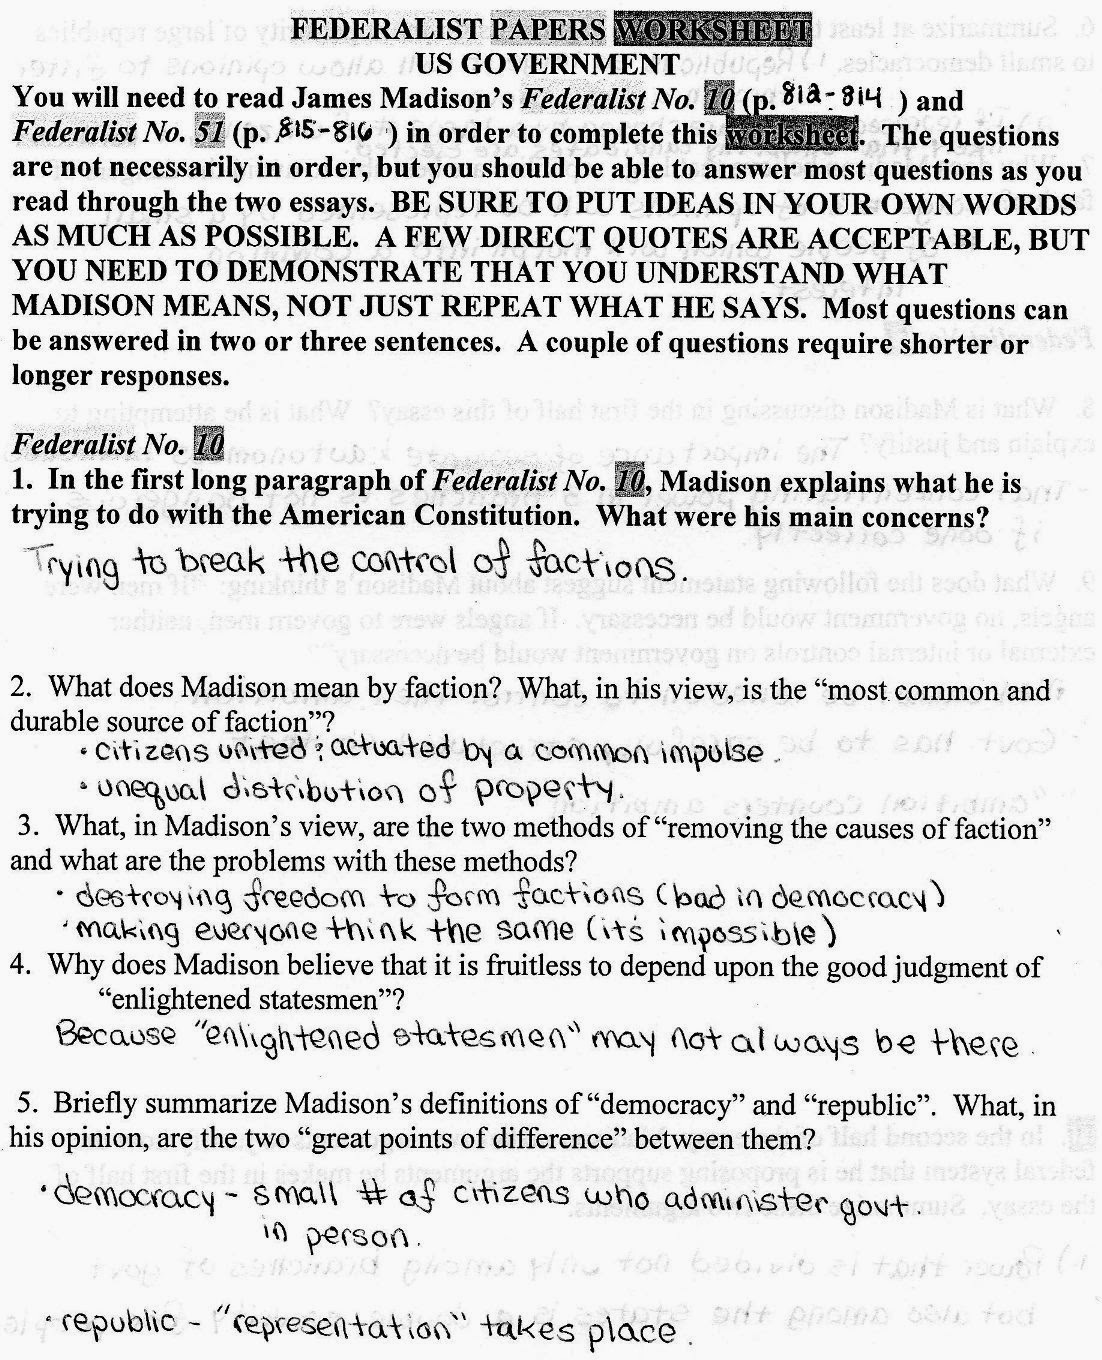 federalist basically no 51 requests in addition to answers